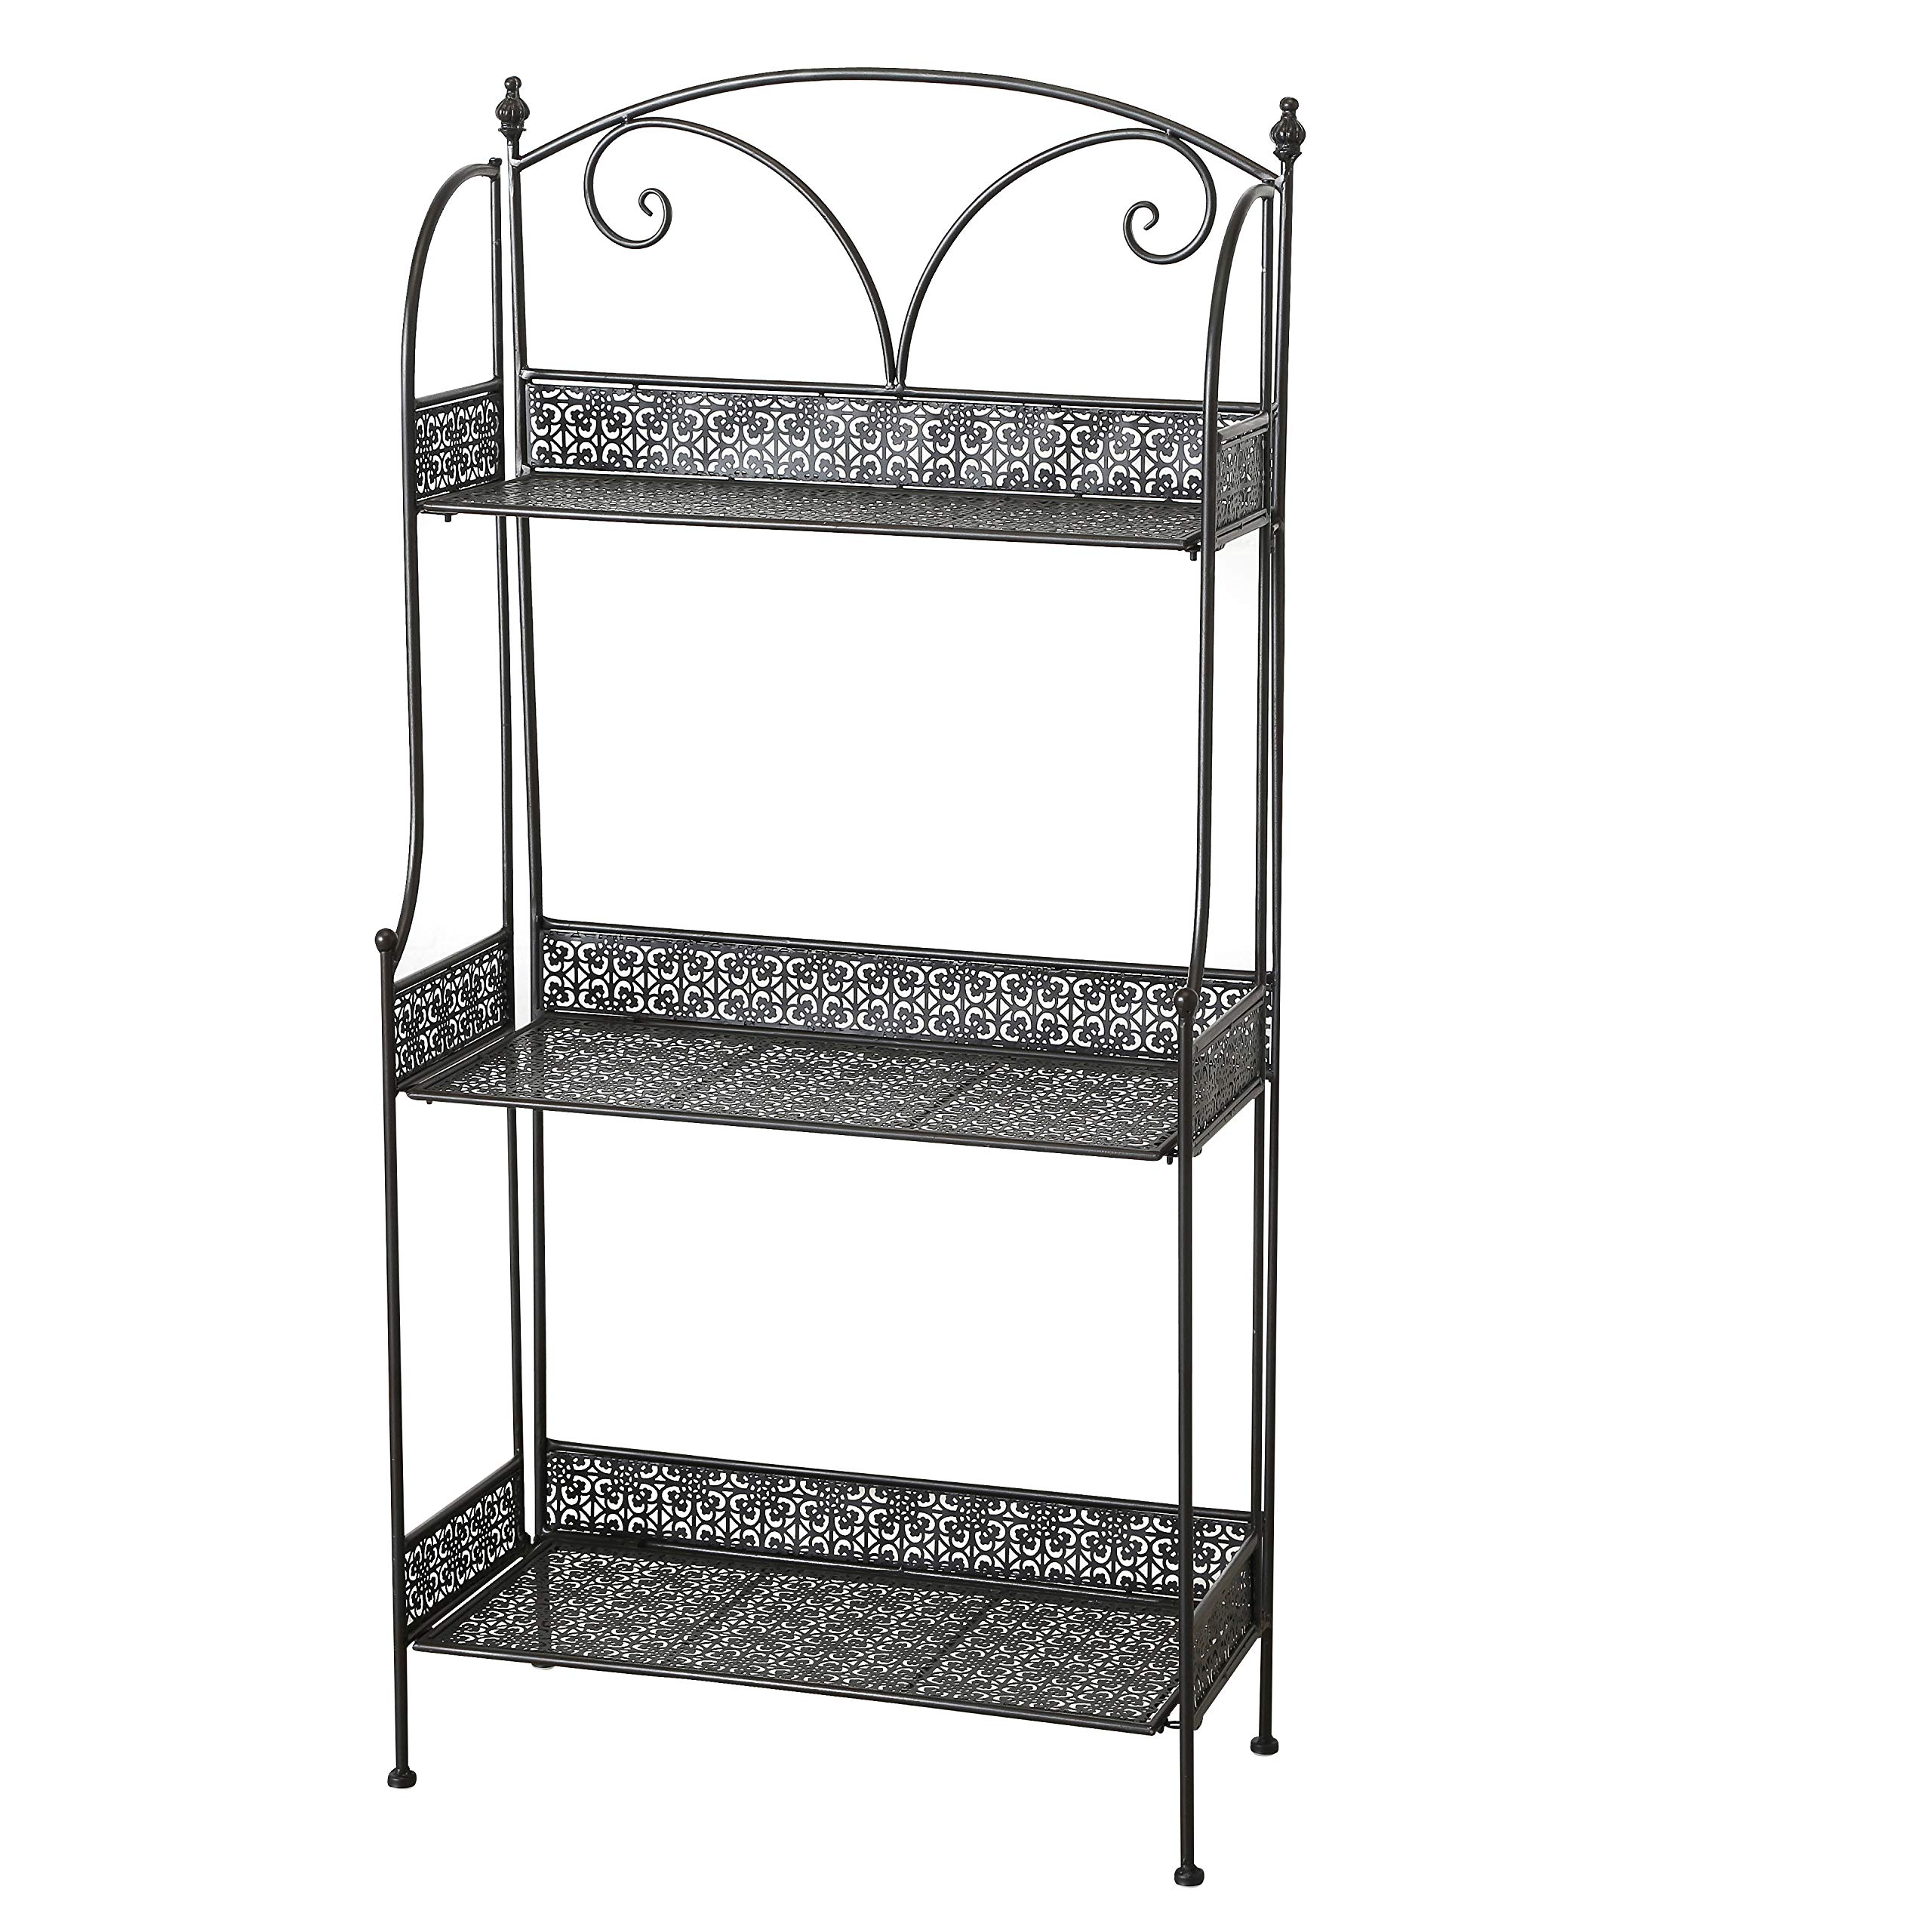 WHW Whole House Worlds Farmers Favorite 3 Tier Rack, Plant Stand, Black Powder Coated Iron, Punched Floral Fold-Out Rimmed Shelves, Finial Top Details, 23 1/2 L x 11 W x 48 H Inches, (60 x 122 cm)